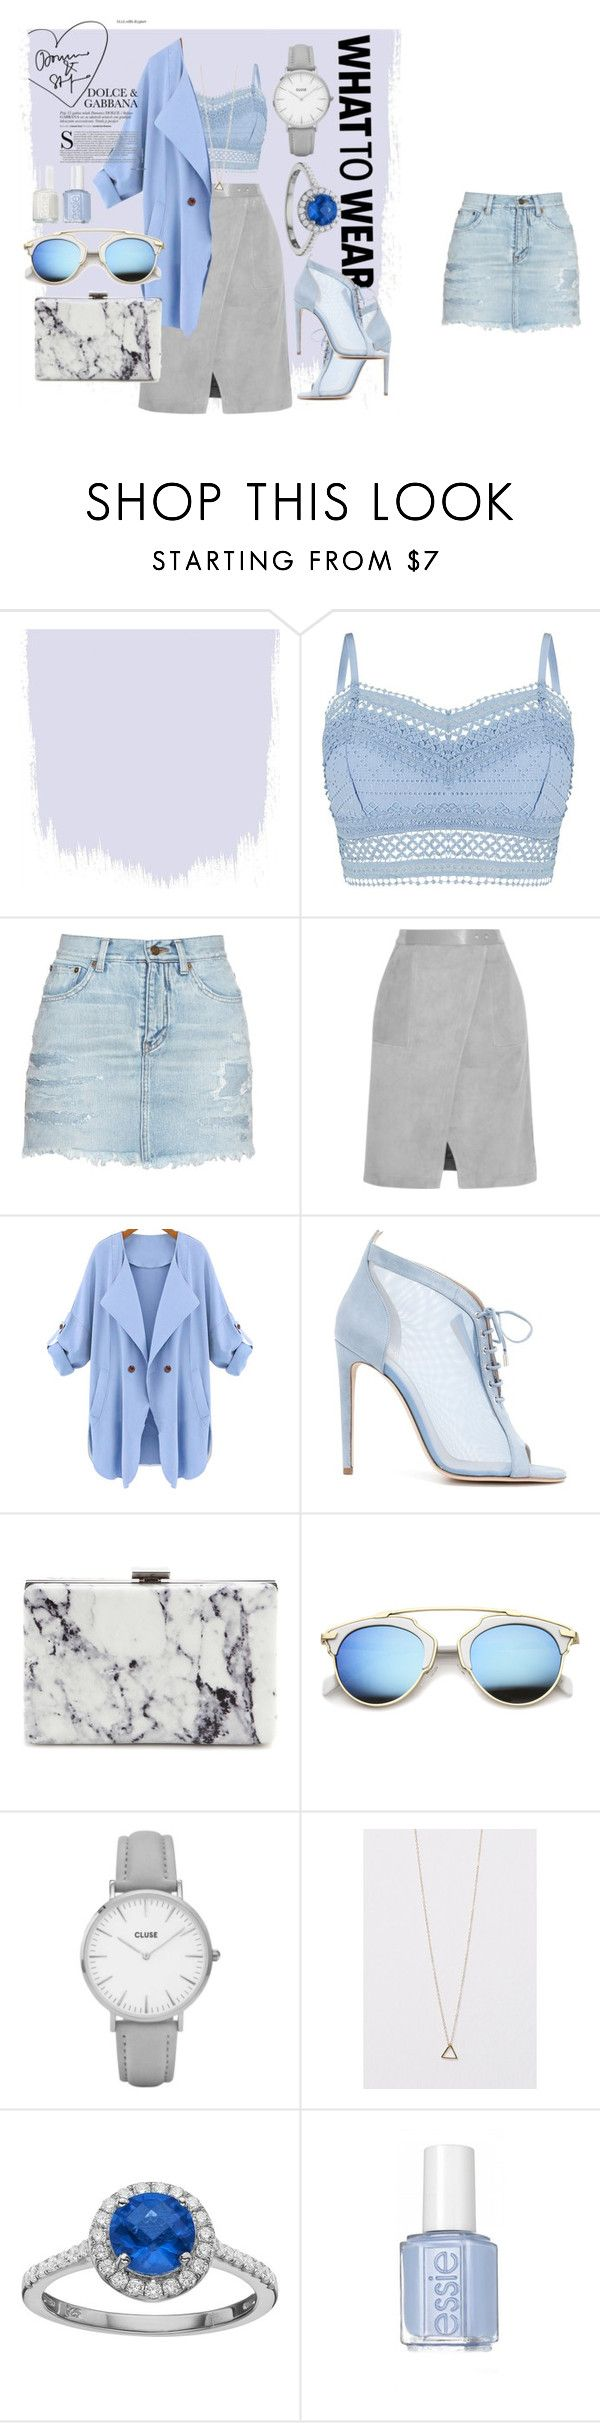 """Blue lagune mood."" by ro-mondryk on Polyvore featuring Lipsy, Yves Saint Laurent, Halston Heritage, WithChic, Chloe Gosselin, Balenciaga, Topshop, Rebecca Sloane and Essie"